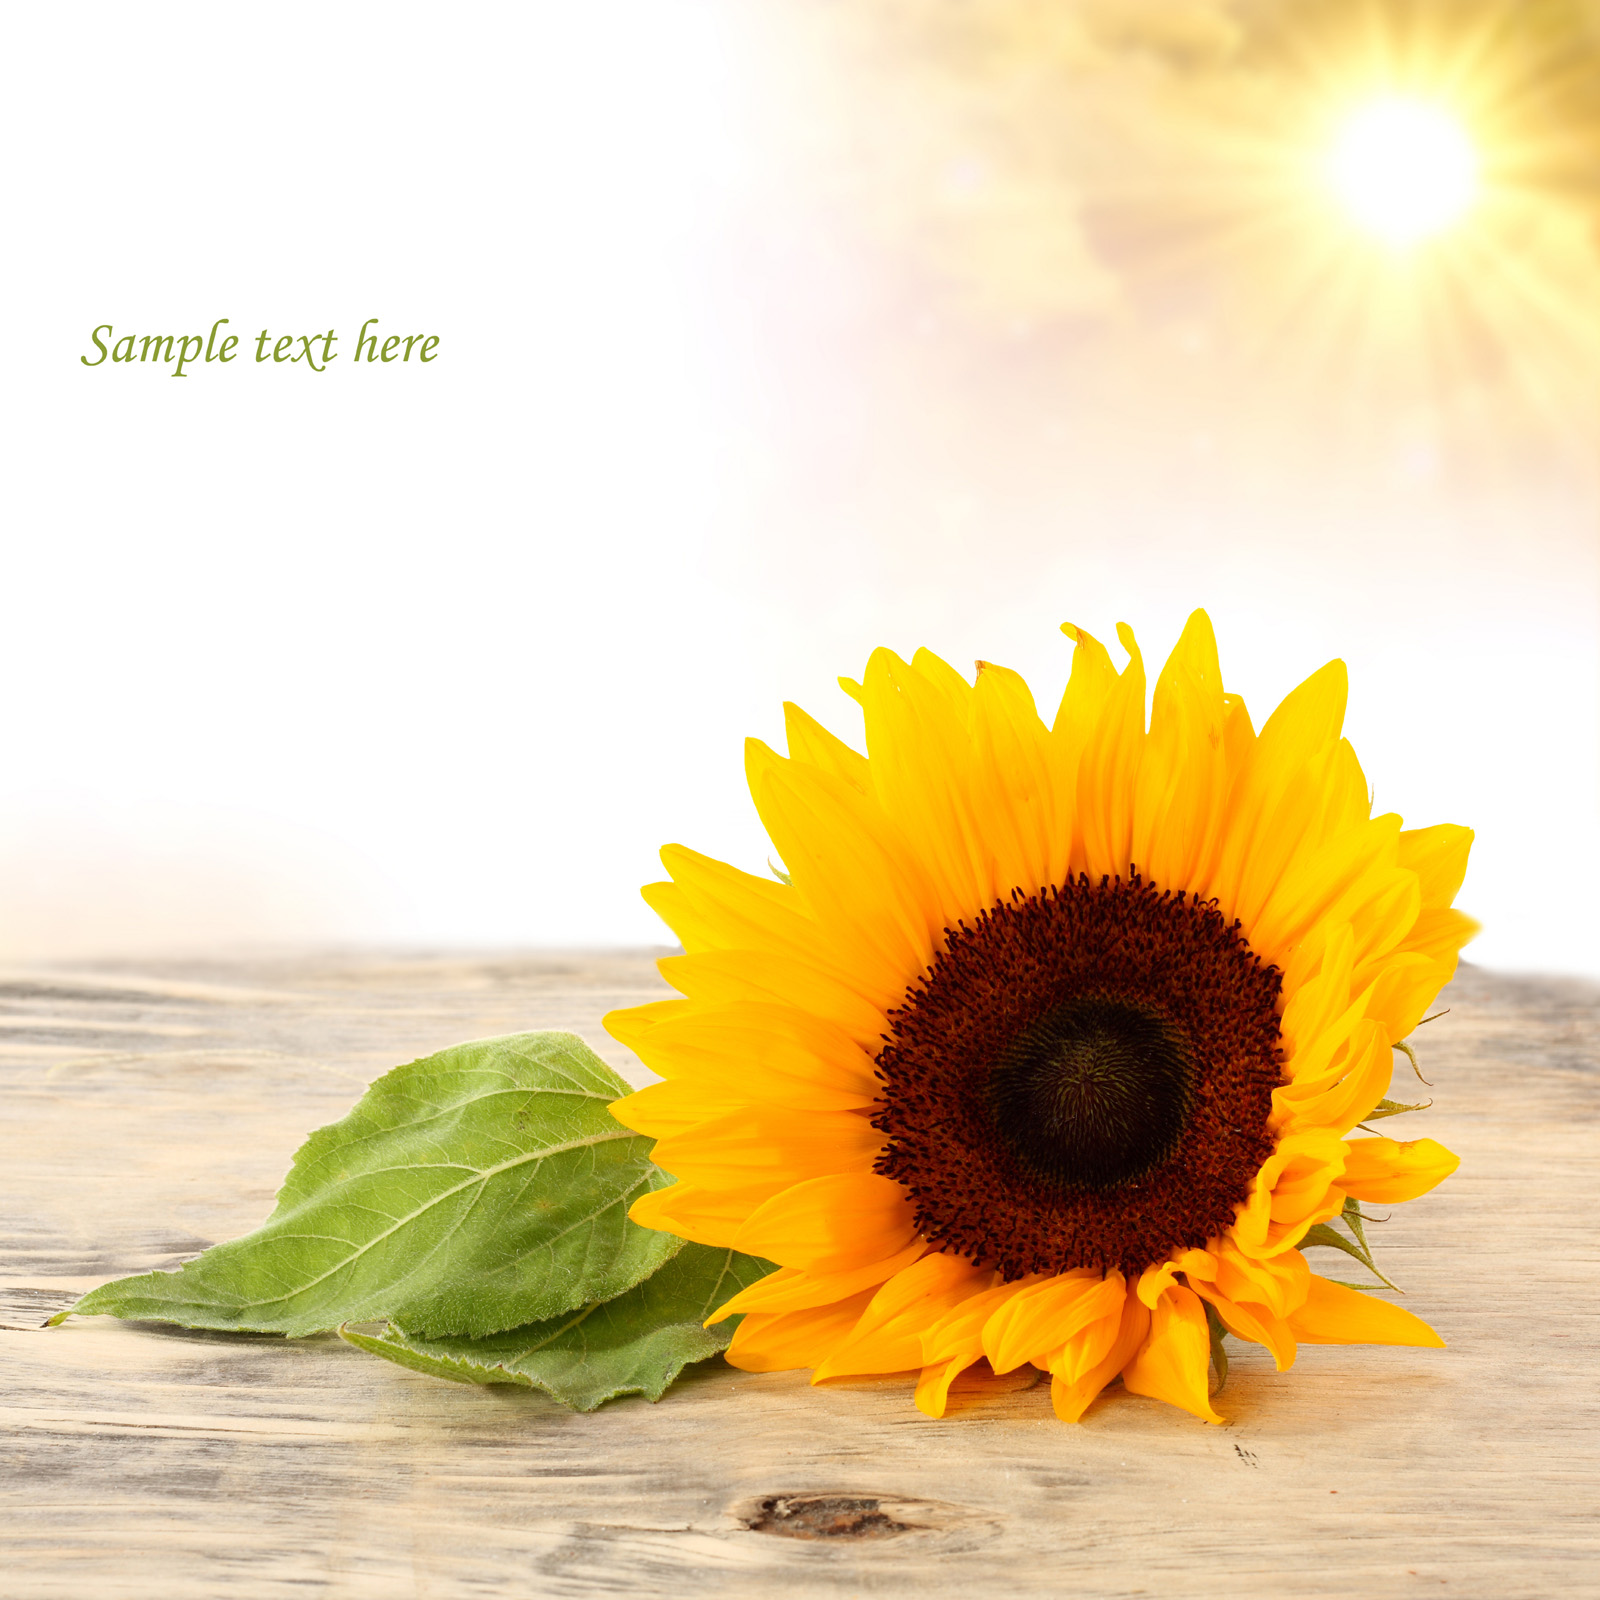 Bright sunshine and sunflowers 50996